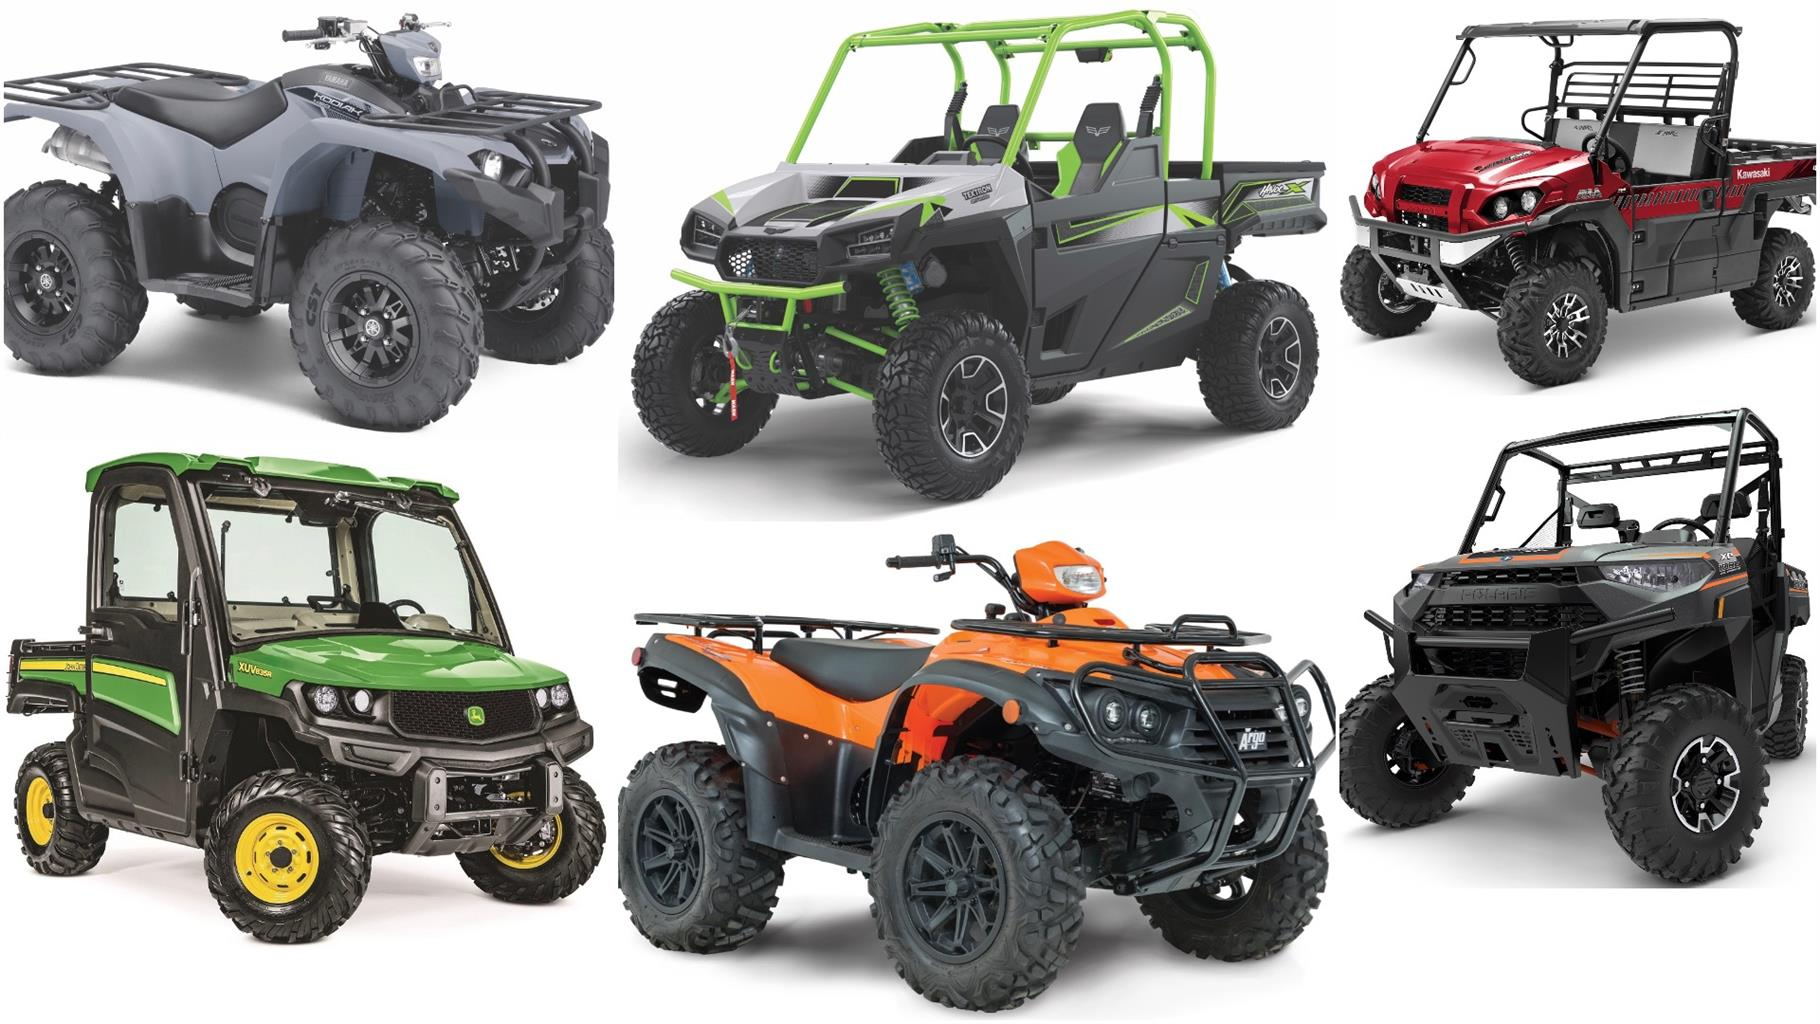 SPECIAL ON ALL UTV ENGINES DIRECT FROM THE MANUFACTURERES